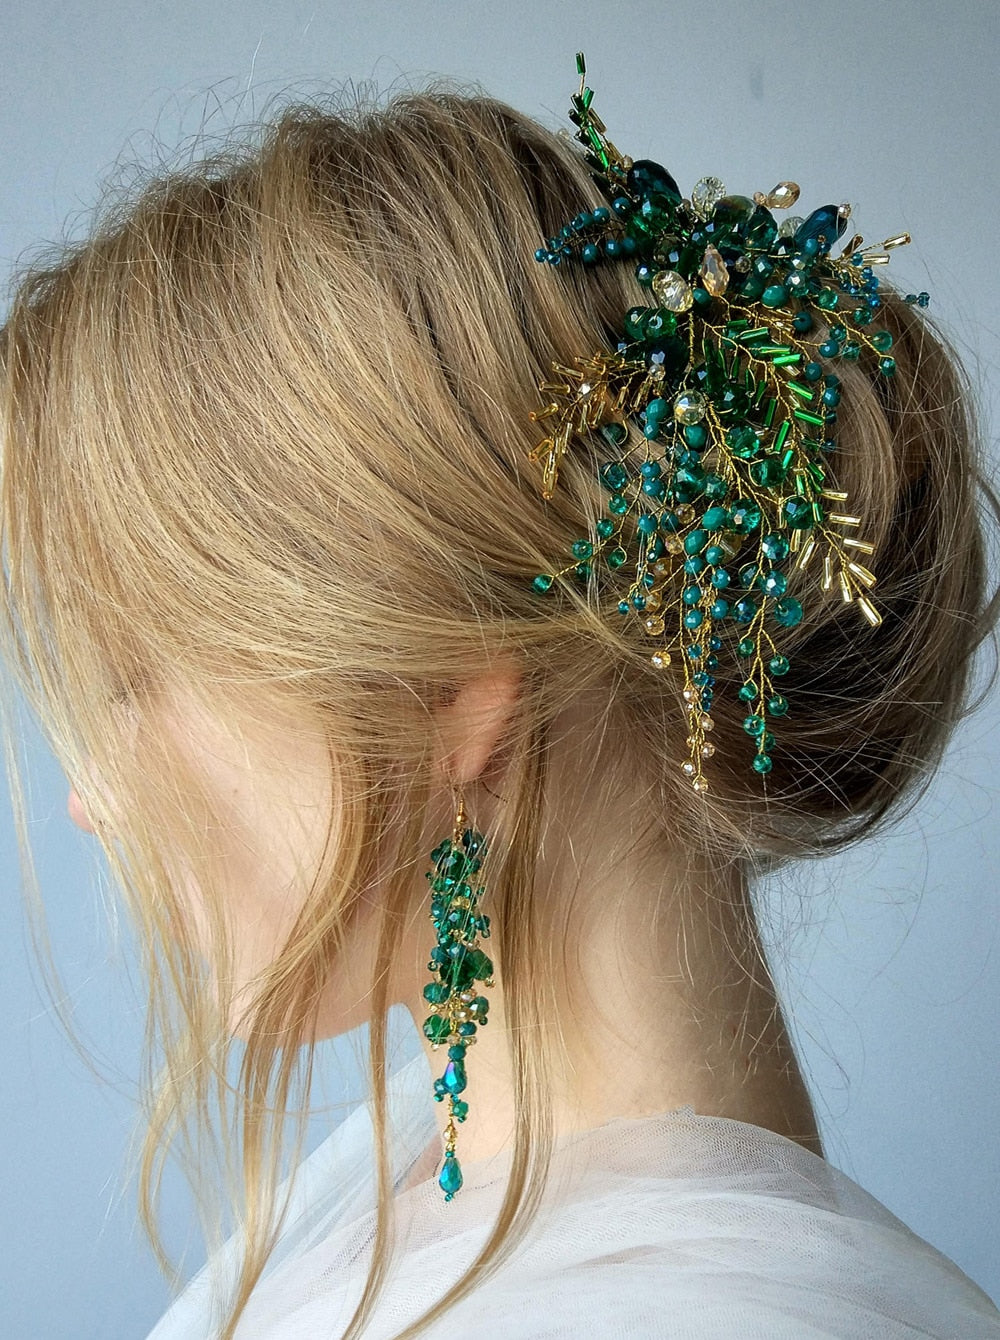 Green Envy Crystal Hair Vine Hair Piece Bridal Gold Hair Accessories & Earrings